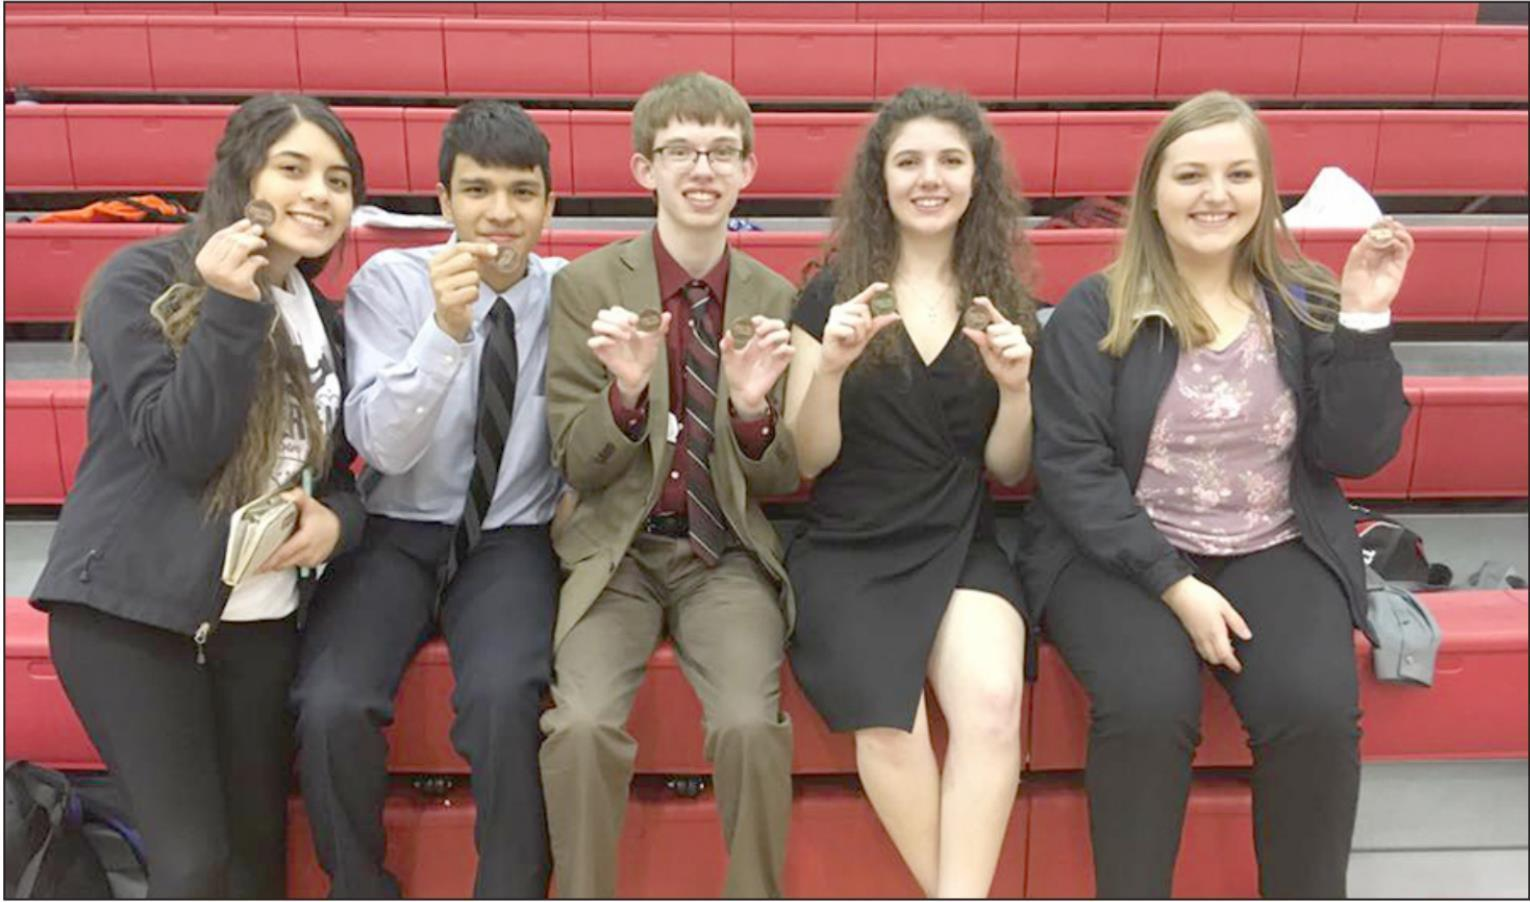 Gibbon speech team members who earned medals at the conference meet were, left to right, Xipatly Irlas, Martin Montanez, Chris Mercer, Delaney Tracy, and Zoe Anderson. (–courtesy photo)